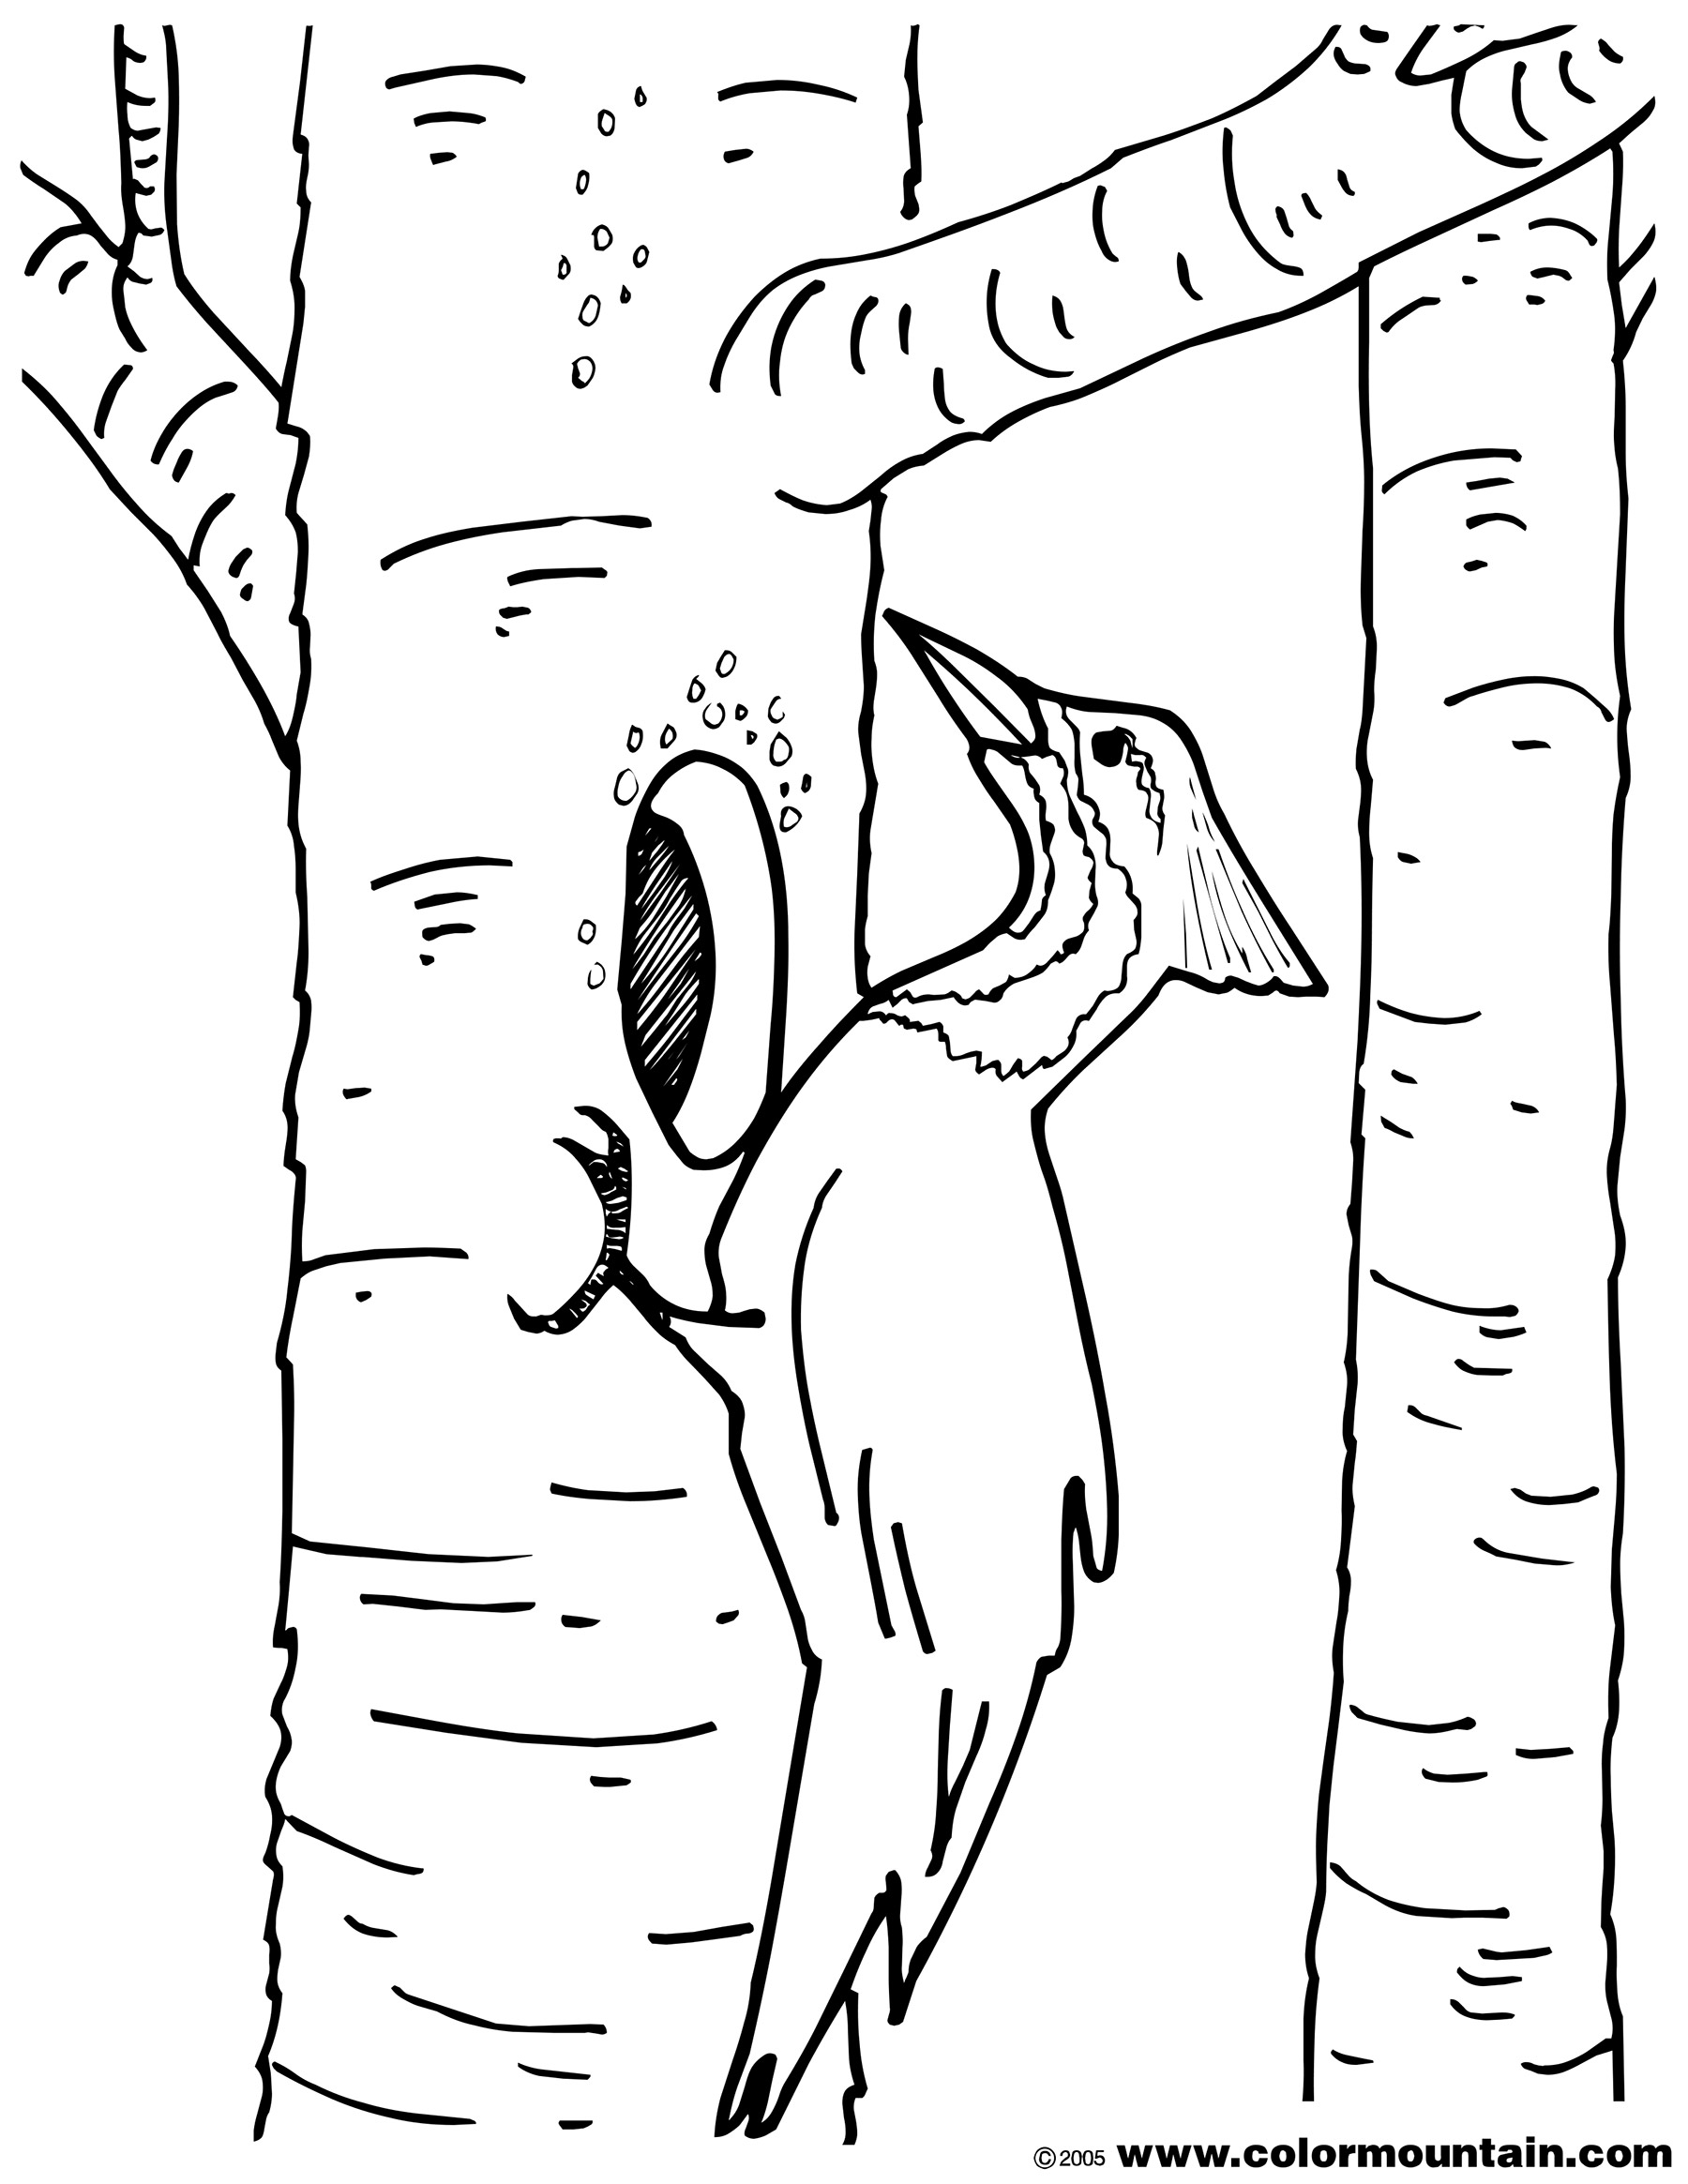 Woodpecker coloring #11, Download drawings